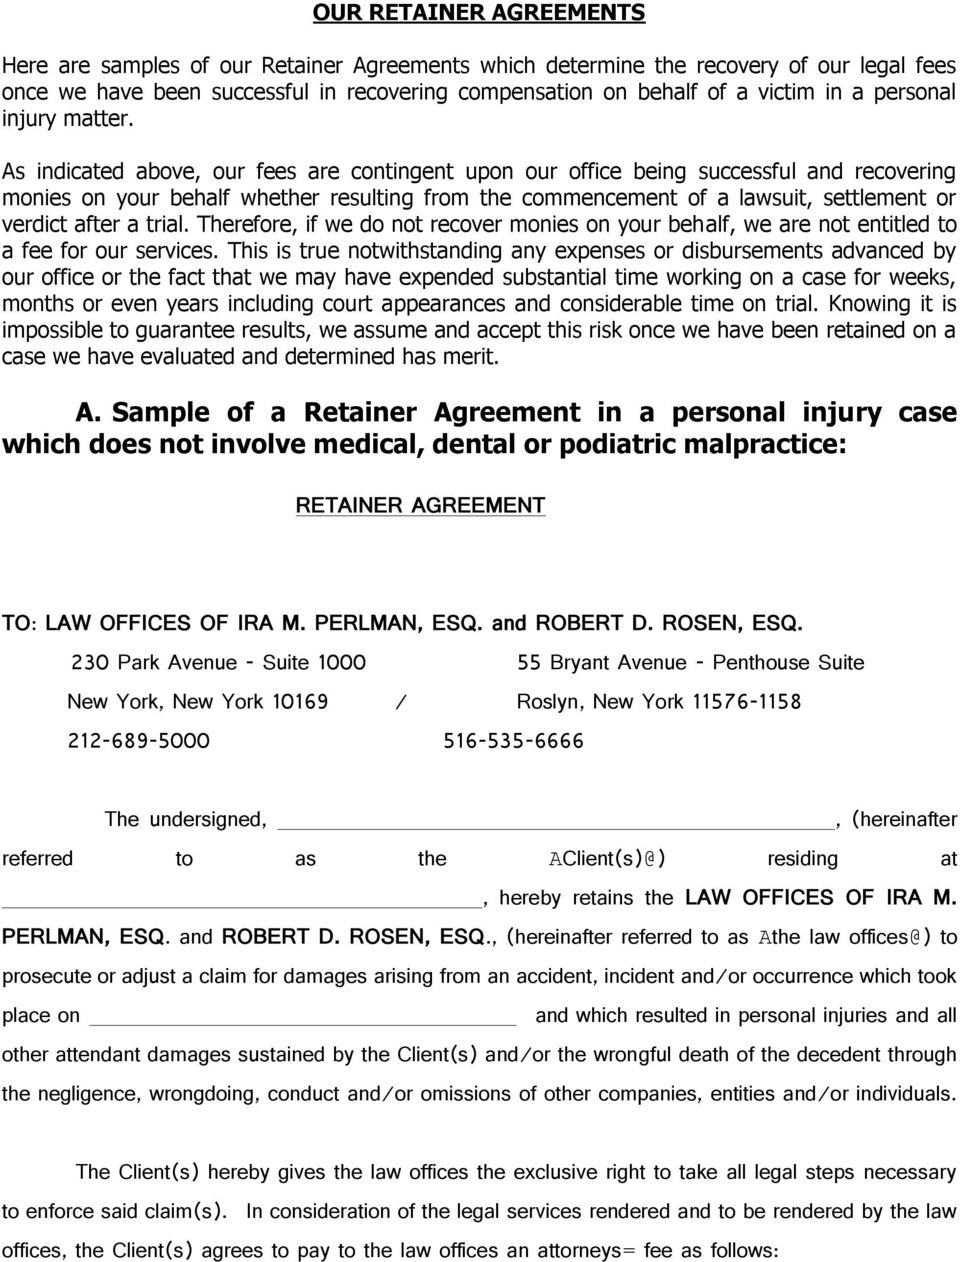 a sample of a retainer agreement in a personal injury case retainer fee agreement sample